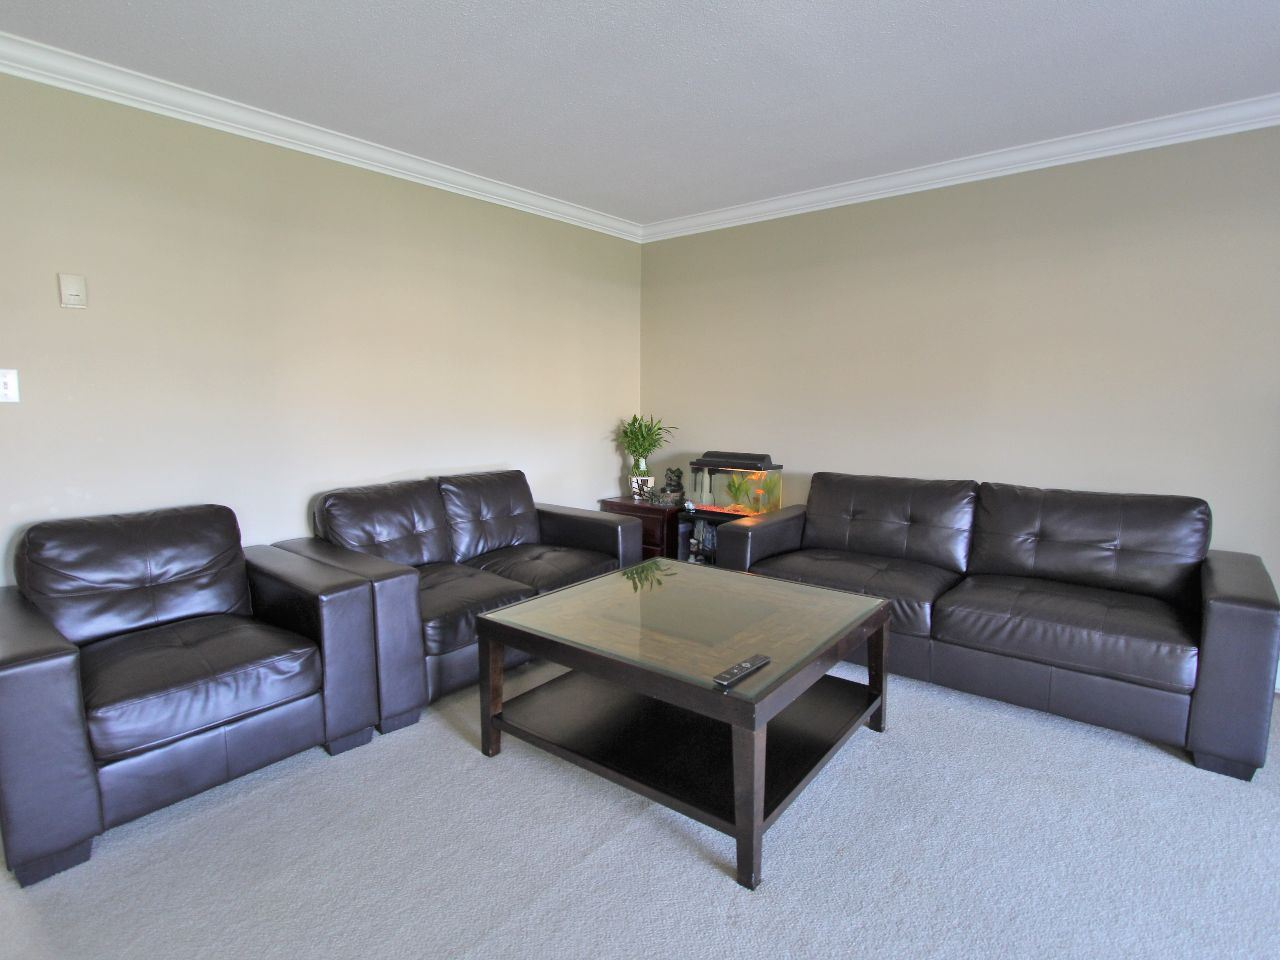 Photo 5: 606 2445 WARE Street in Abbotsford: Central Abbotsford Townhouse for sale : MLS® # R2059494